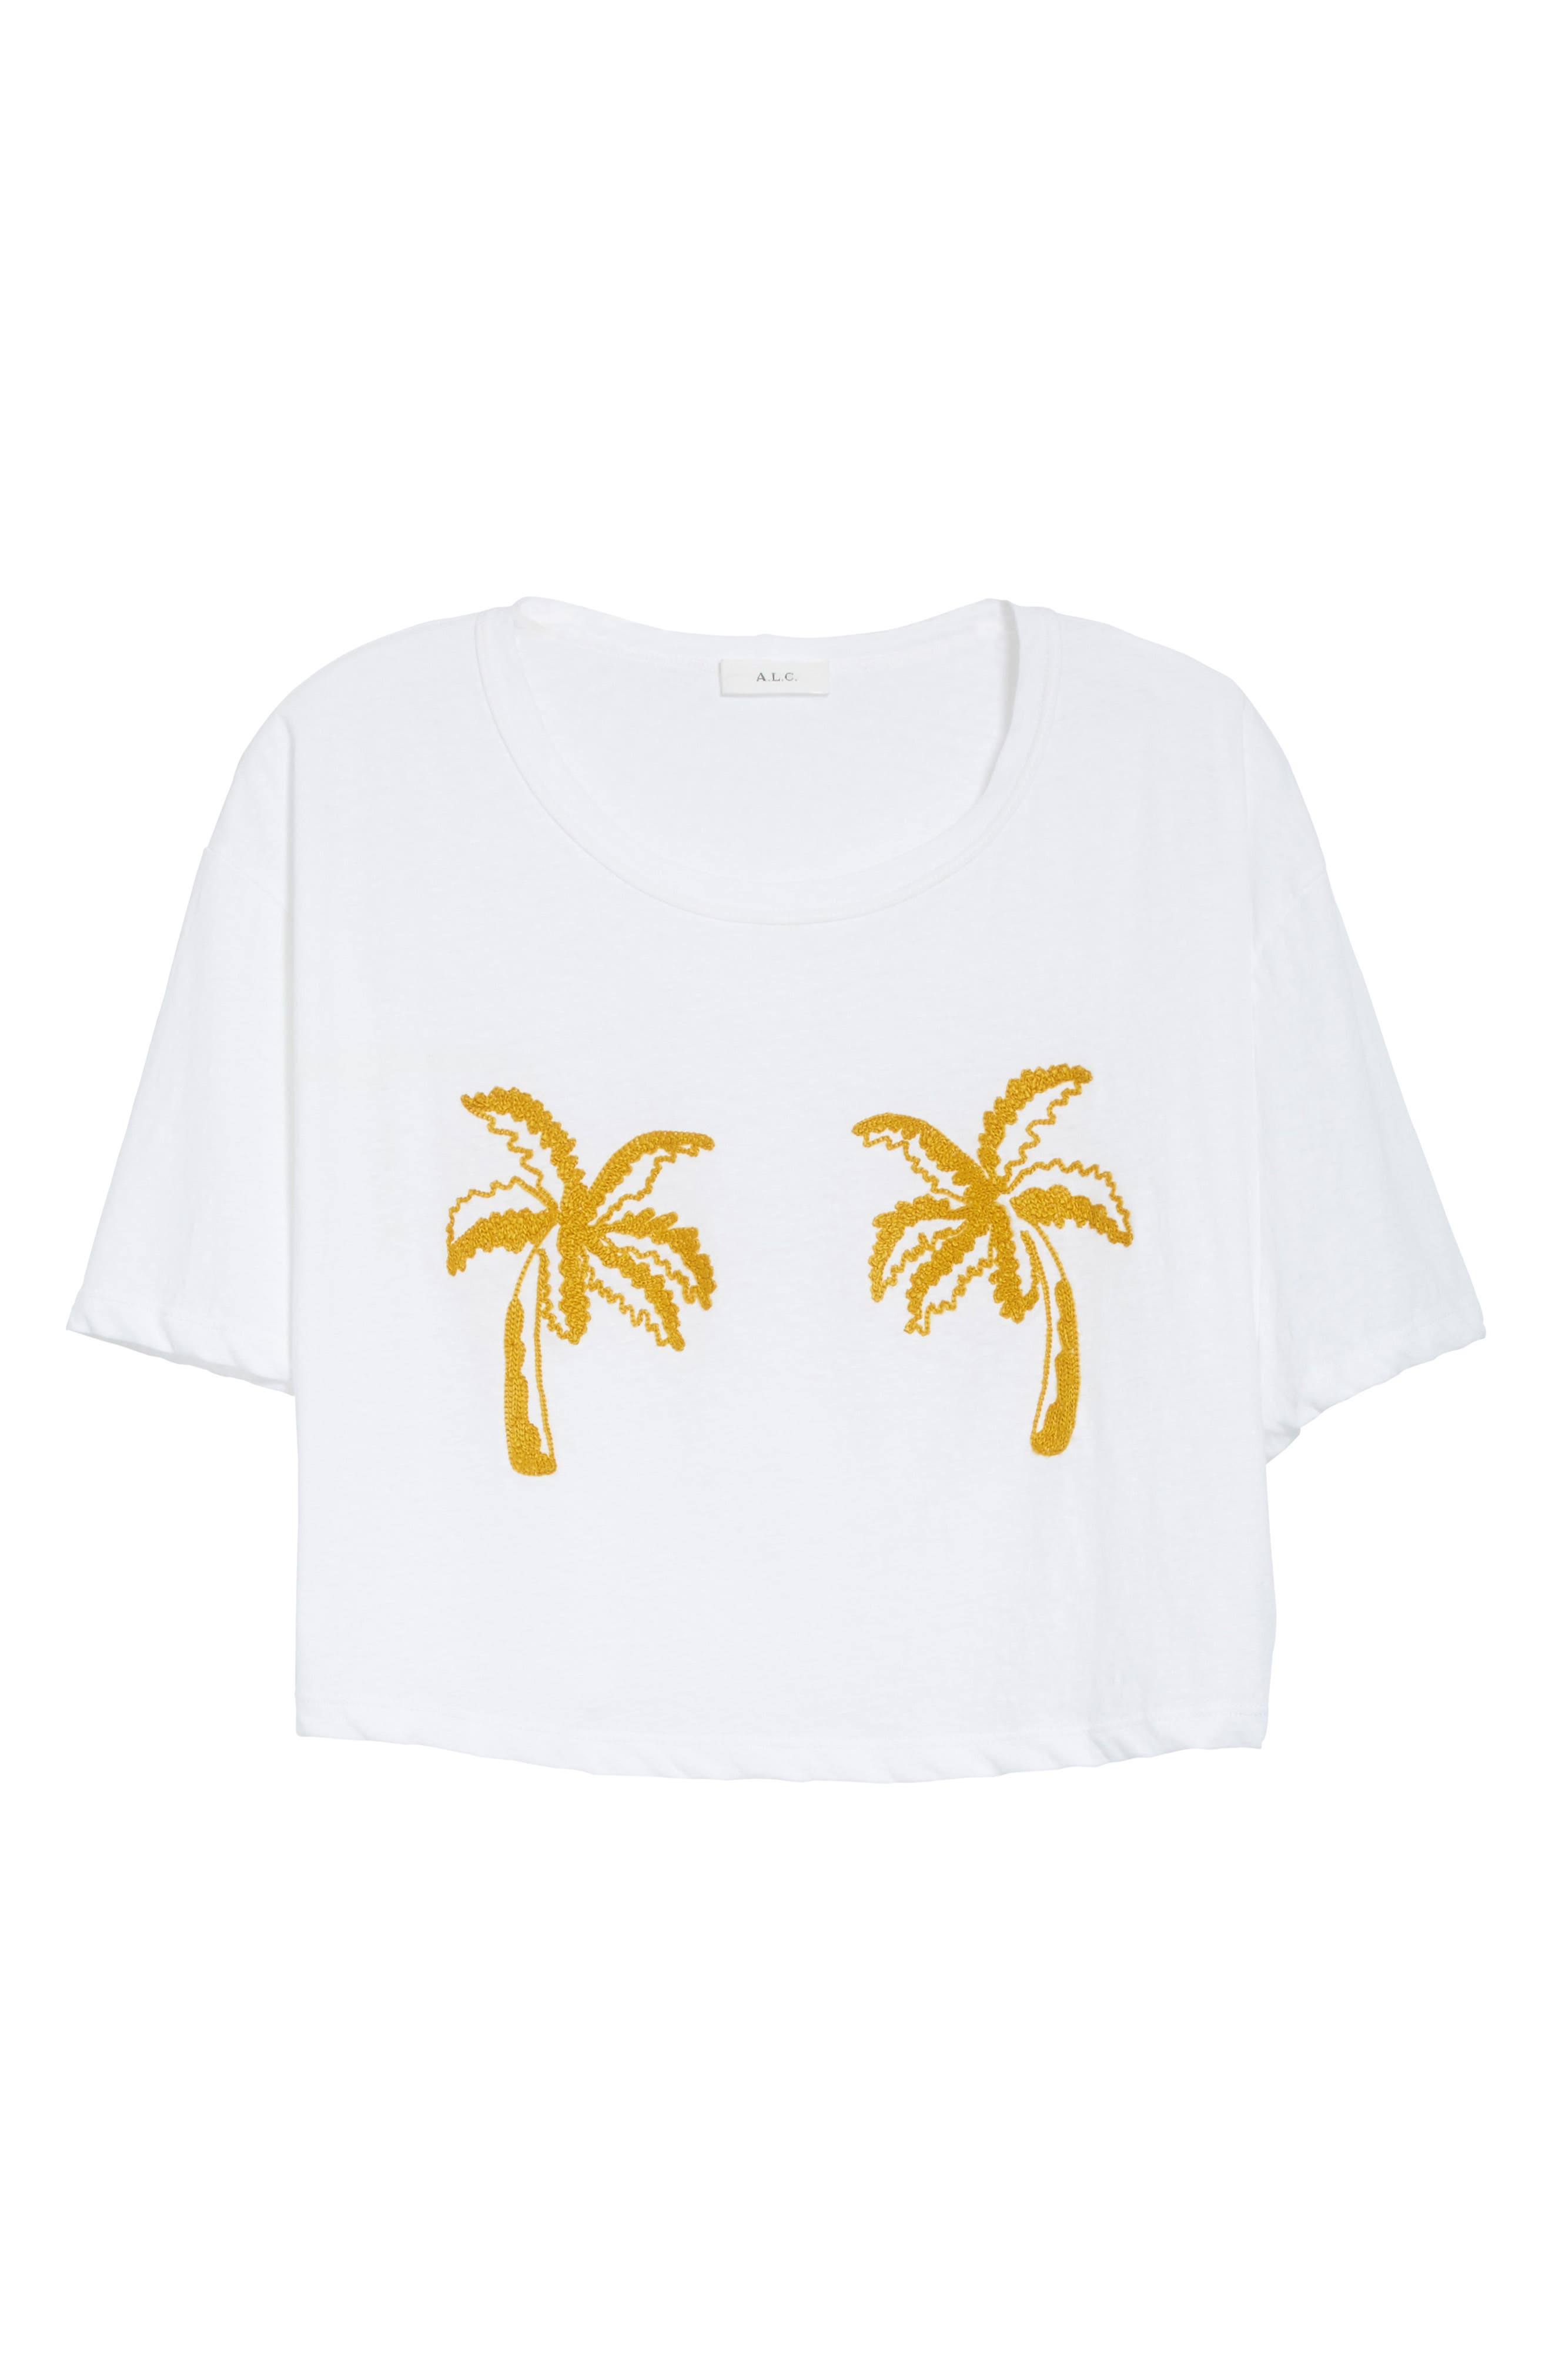 Teagan Palm Embroidered Crop Tee,                             Alternate thumbnail 6, color,                             101